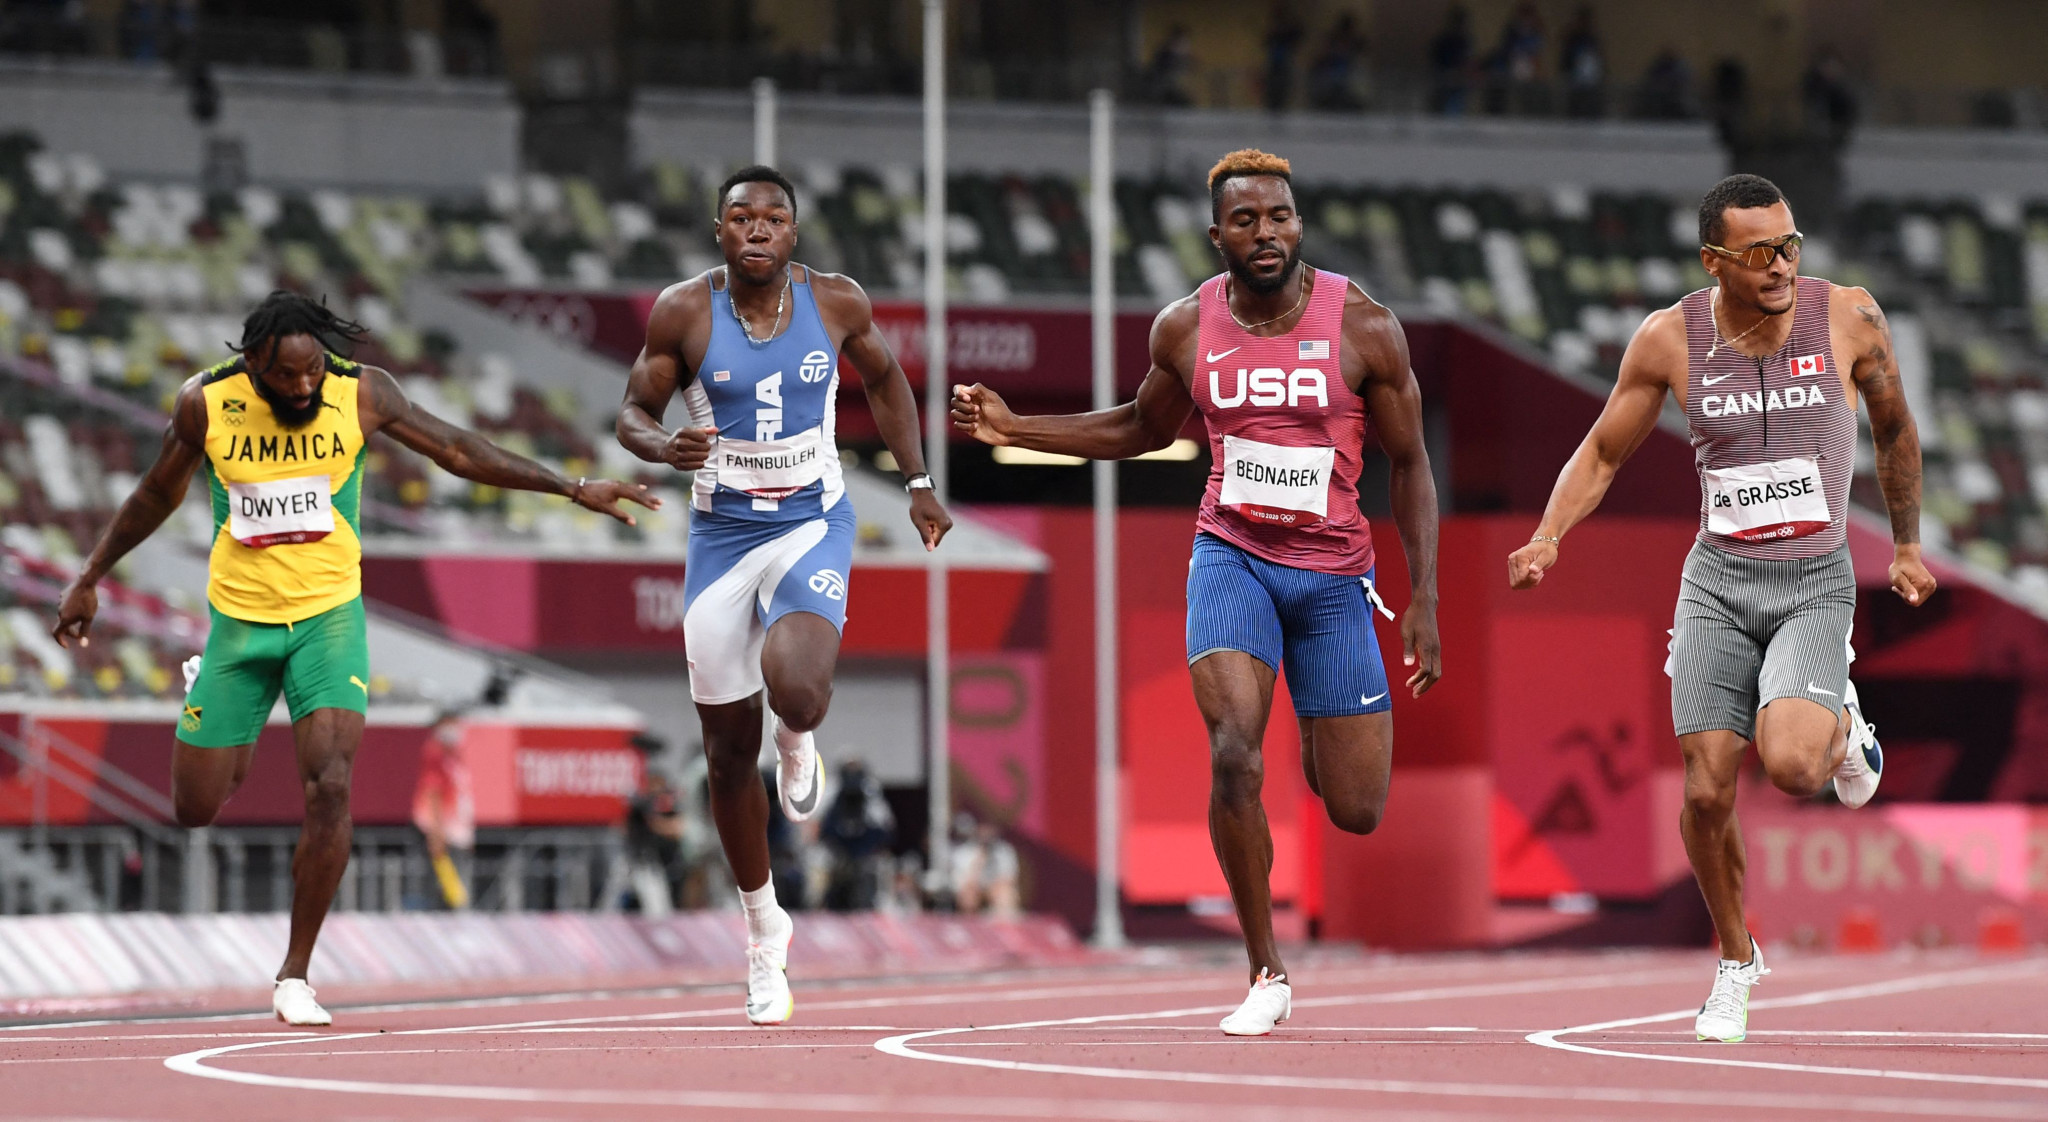 And Canada's Andre De Grasse, right, won the last gold medal of the day, winning the men's 200m ahead of American Kenny Bednarek, second right, by 0.06sec ©Getty Images